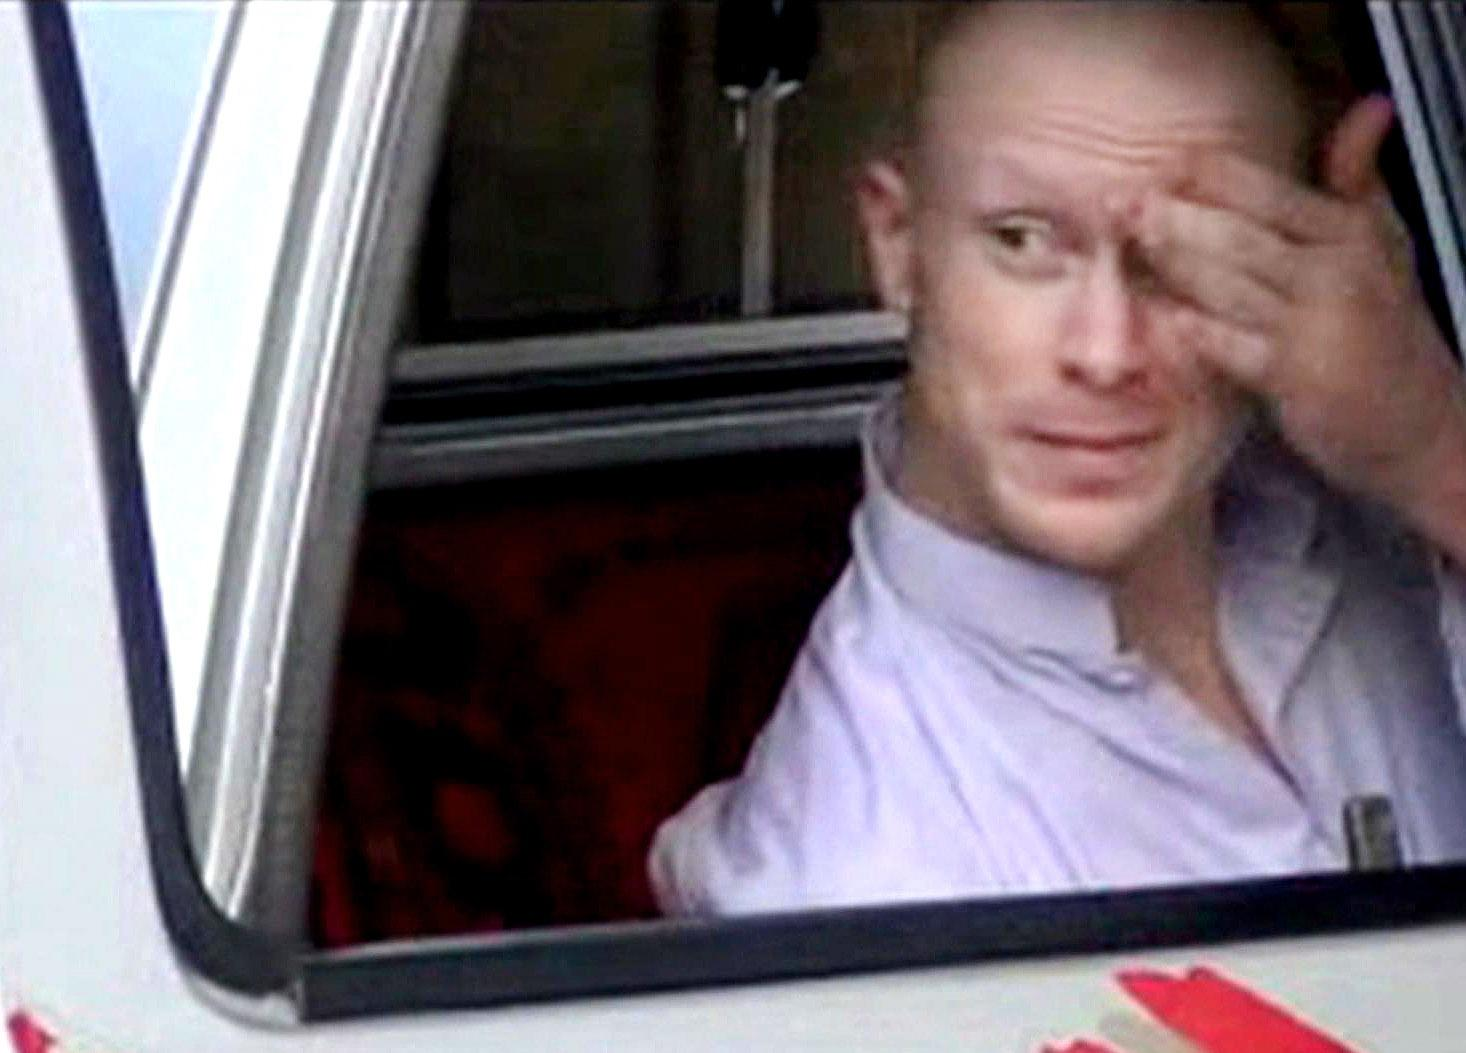 Guantanamo inmates swapped for Bergdahl could move freely